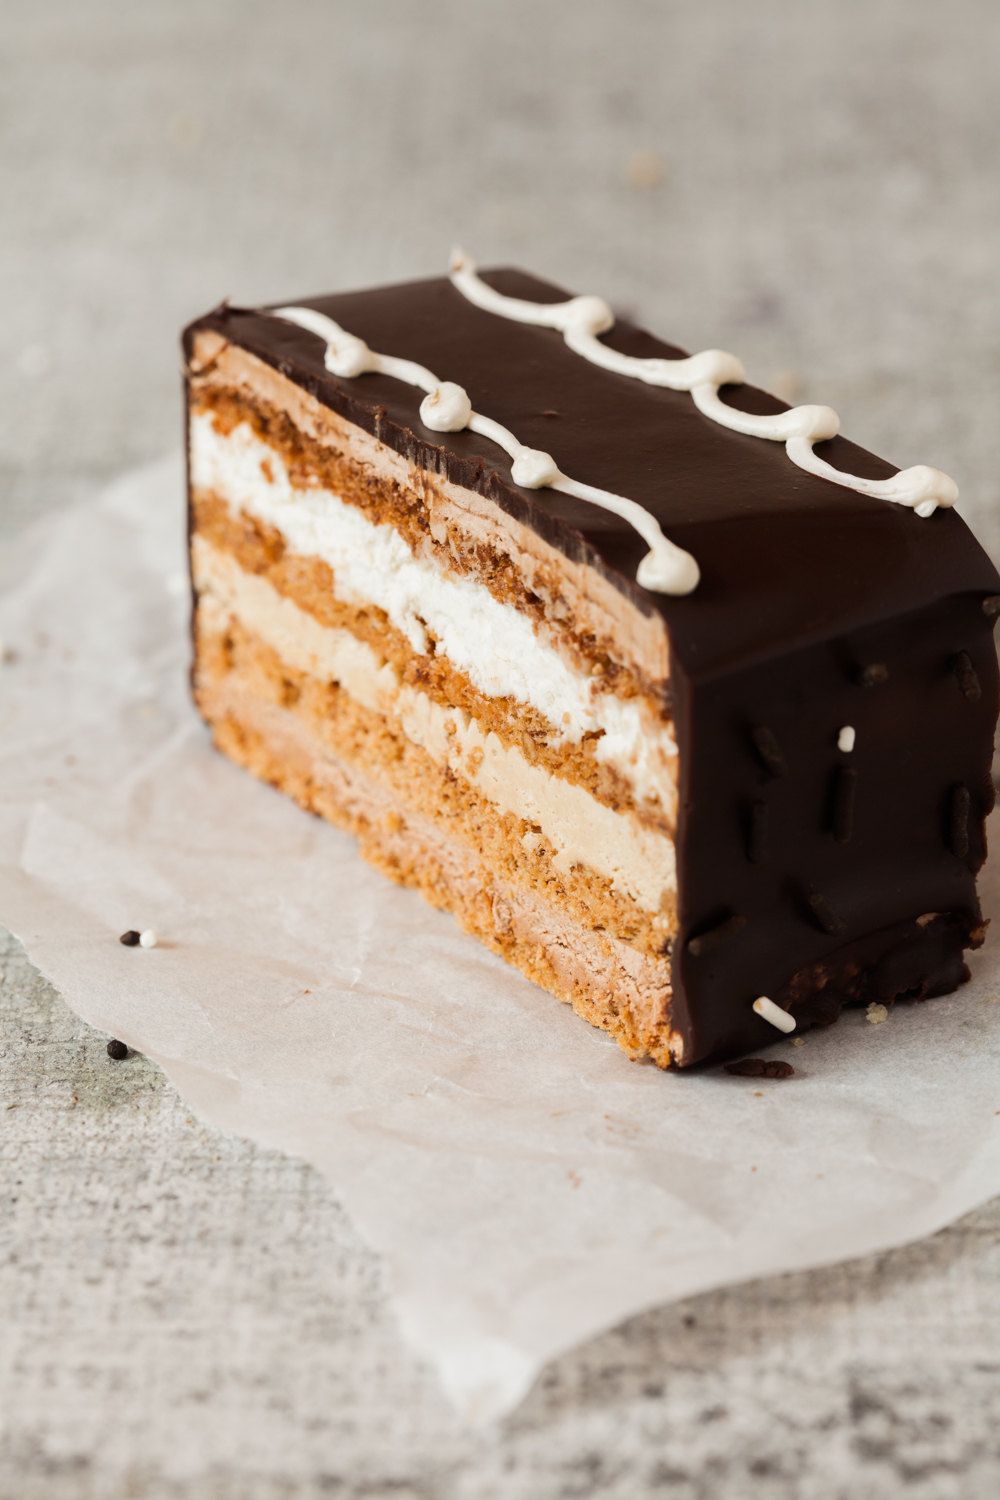 Marjolaine:  This wonderful pastry has four layers of crispy hazelnut meringue sandwiched with praline and chocolate buttercream, whipped cream, and covered in ganache. The Marjolaine can also be ordered in a cake form to feed 6 to 8 people.   *Gluten Free, Kosher for Passover